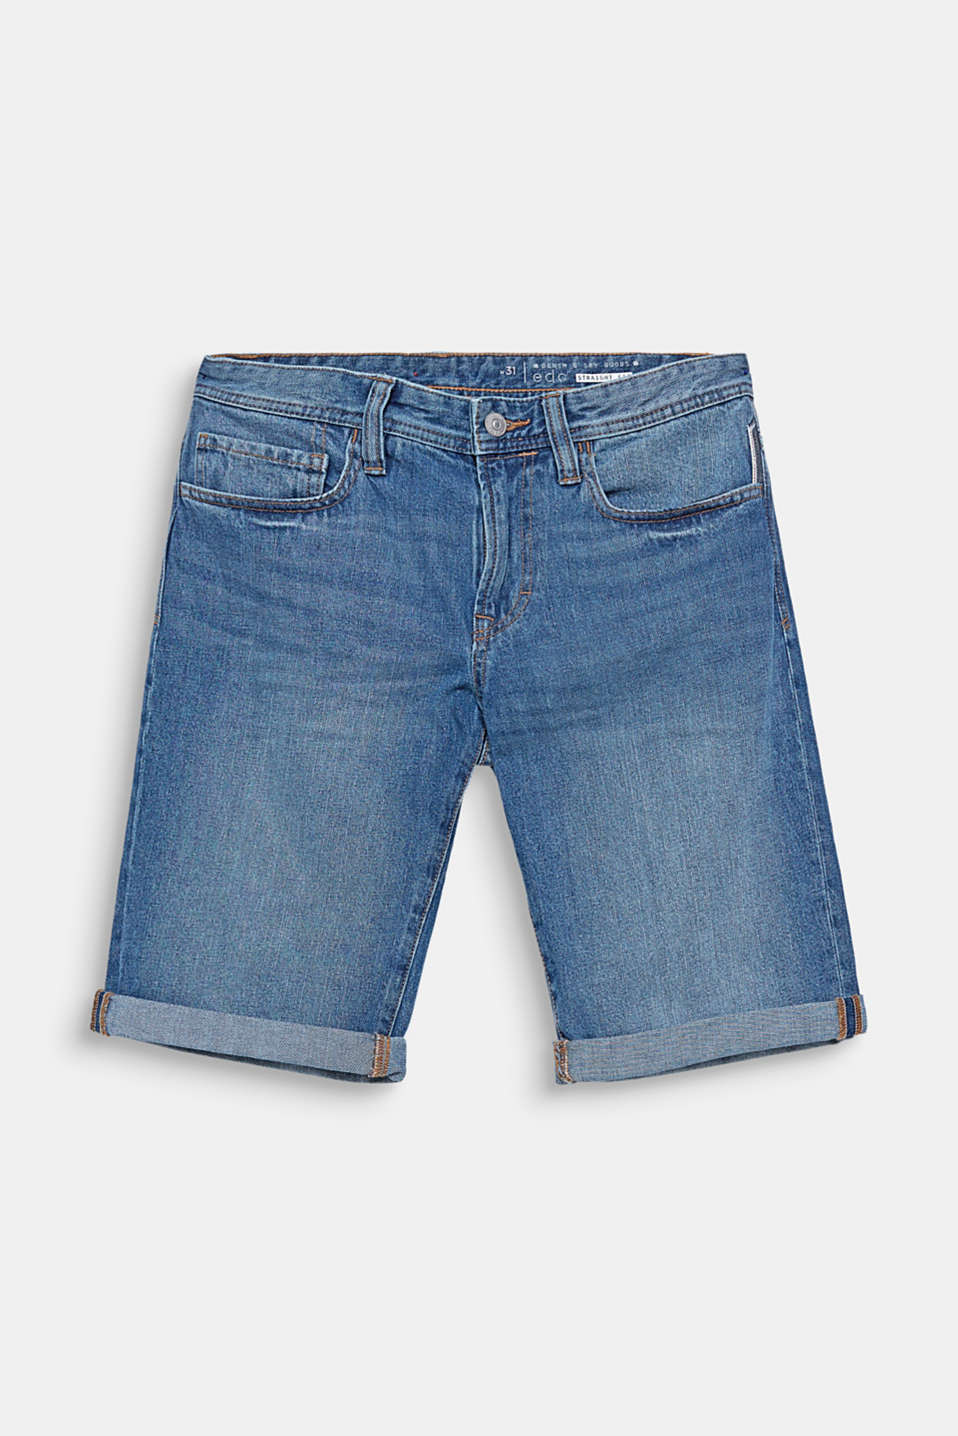 We love denim! These denim shorts impress with their lightweight denim made of environmentally friendly, high-quality organic cotton.